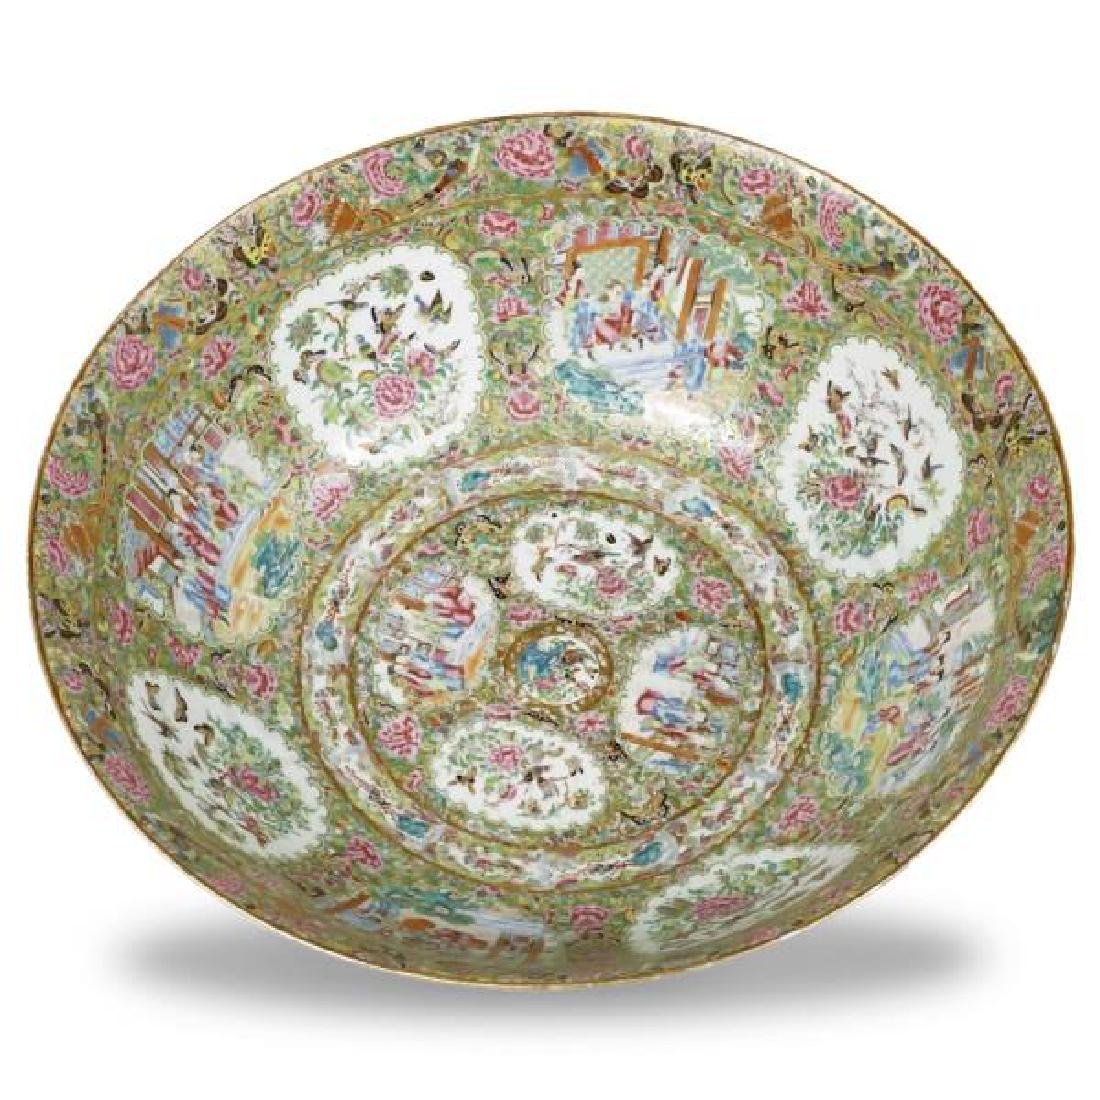 Palatial 19th C. Chinese Rose Medallion Bowl - 2